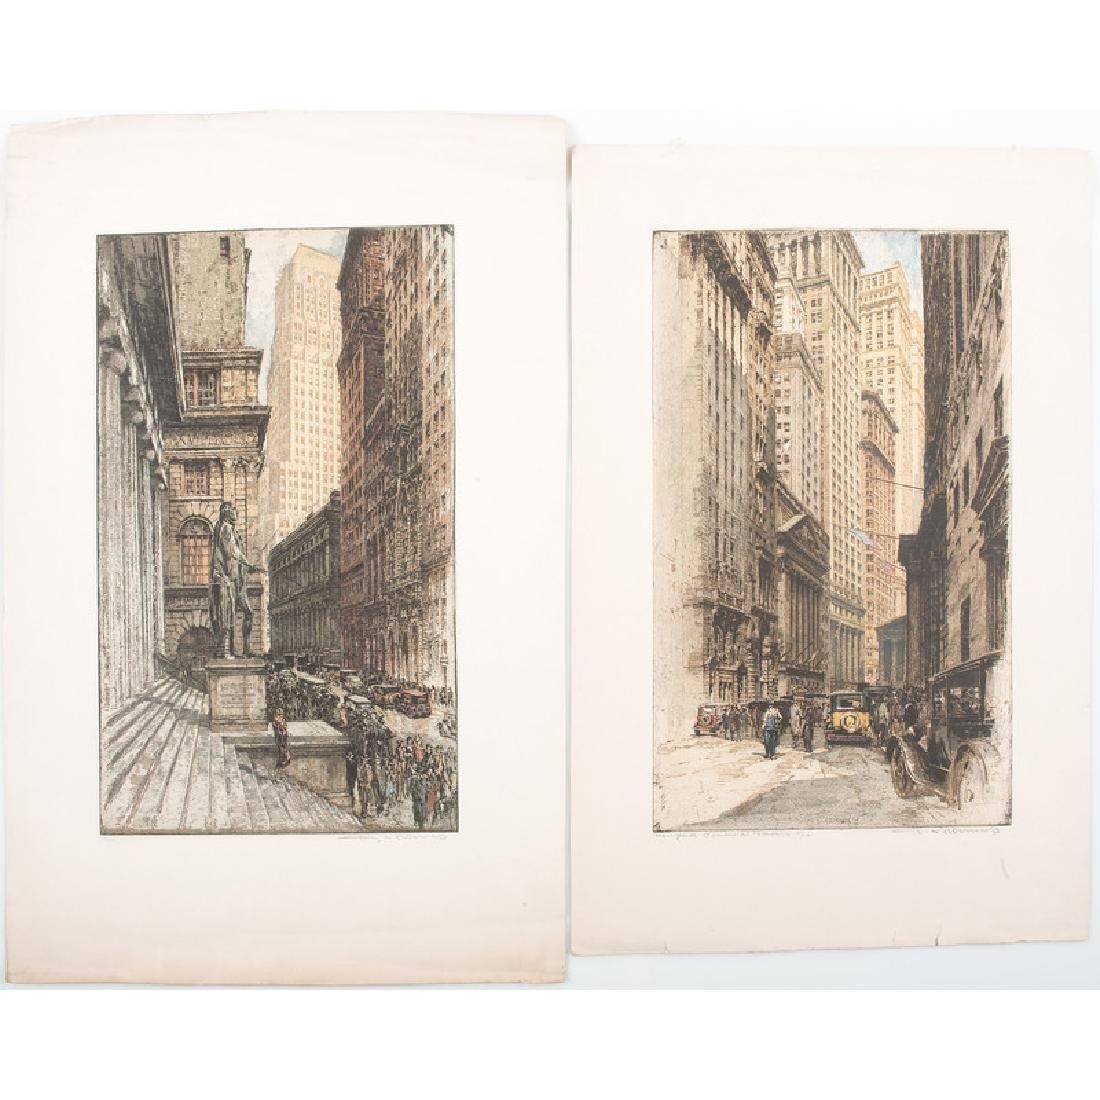 Color Aquatints of New York City Buildings, Signed